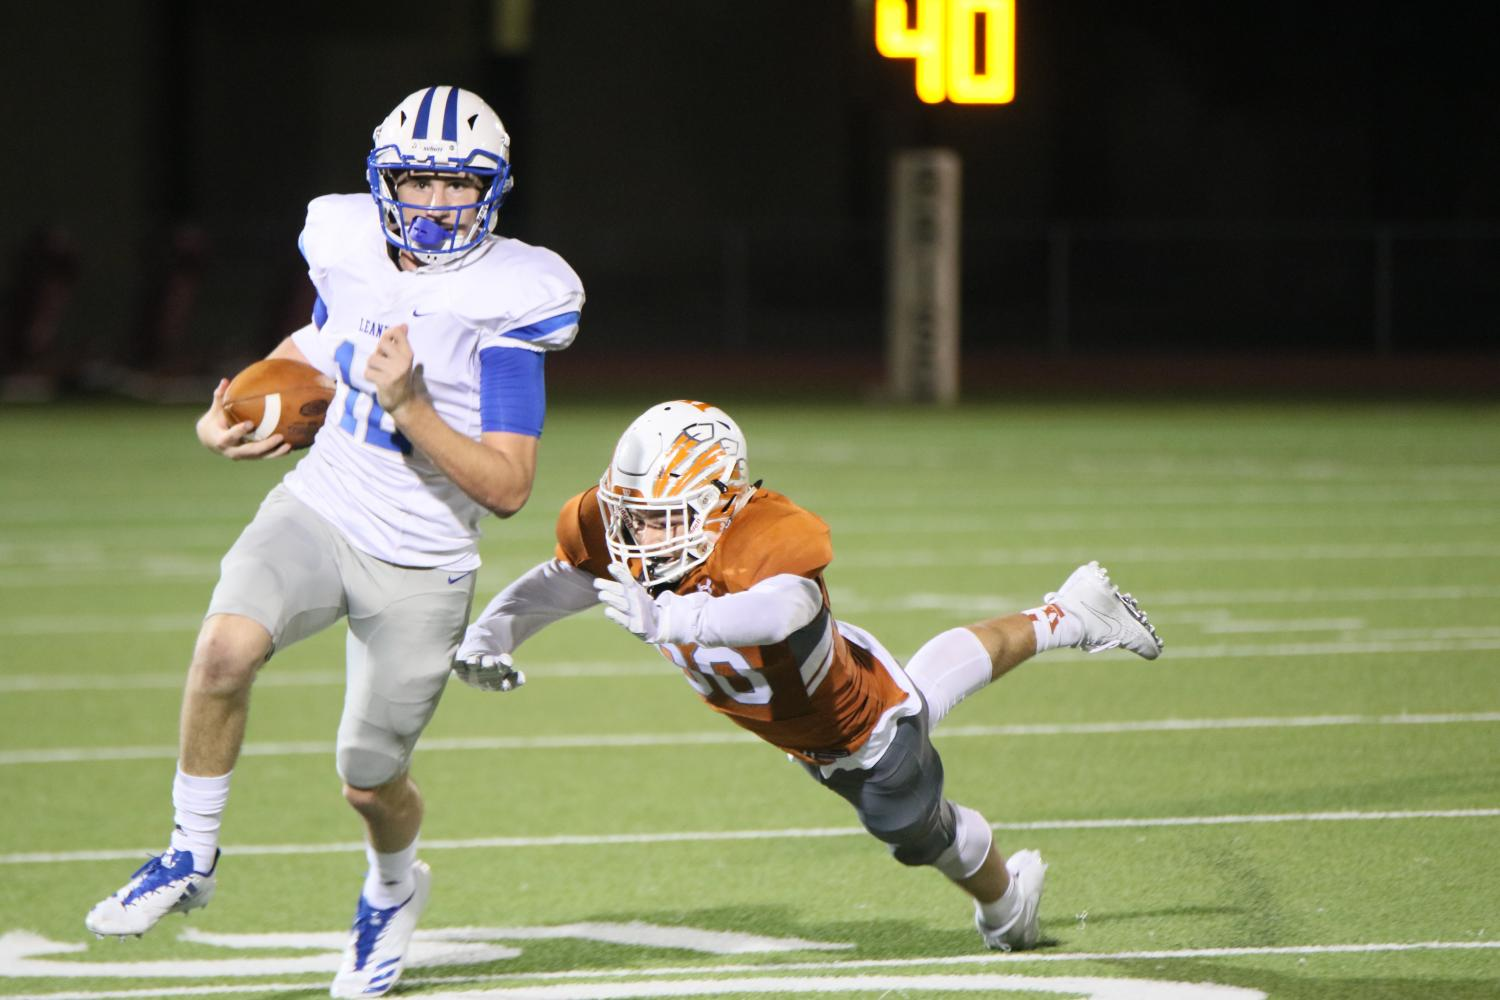 Ethan Brown '19 leaps to tackle a Leander defender.